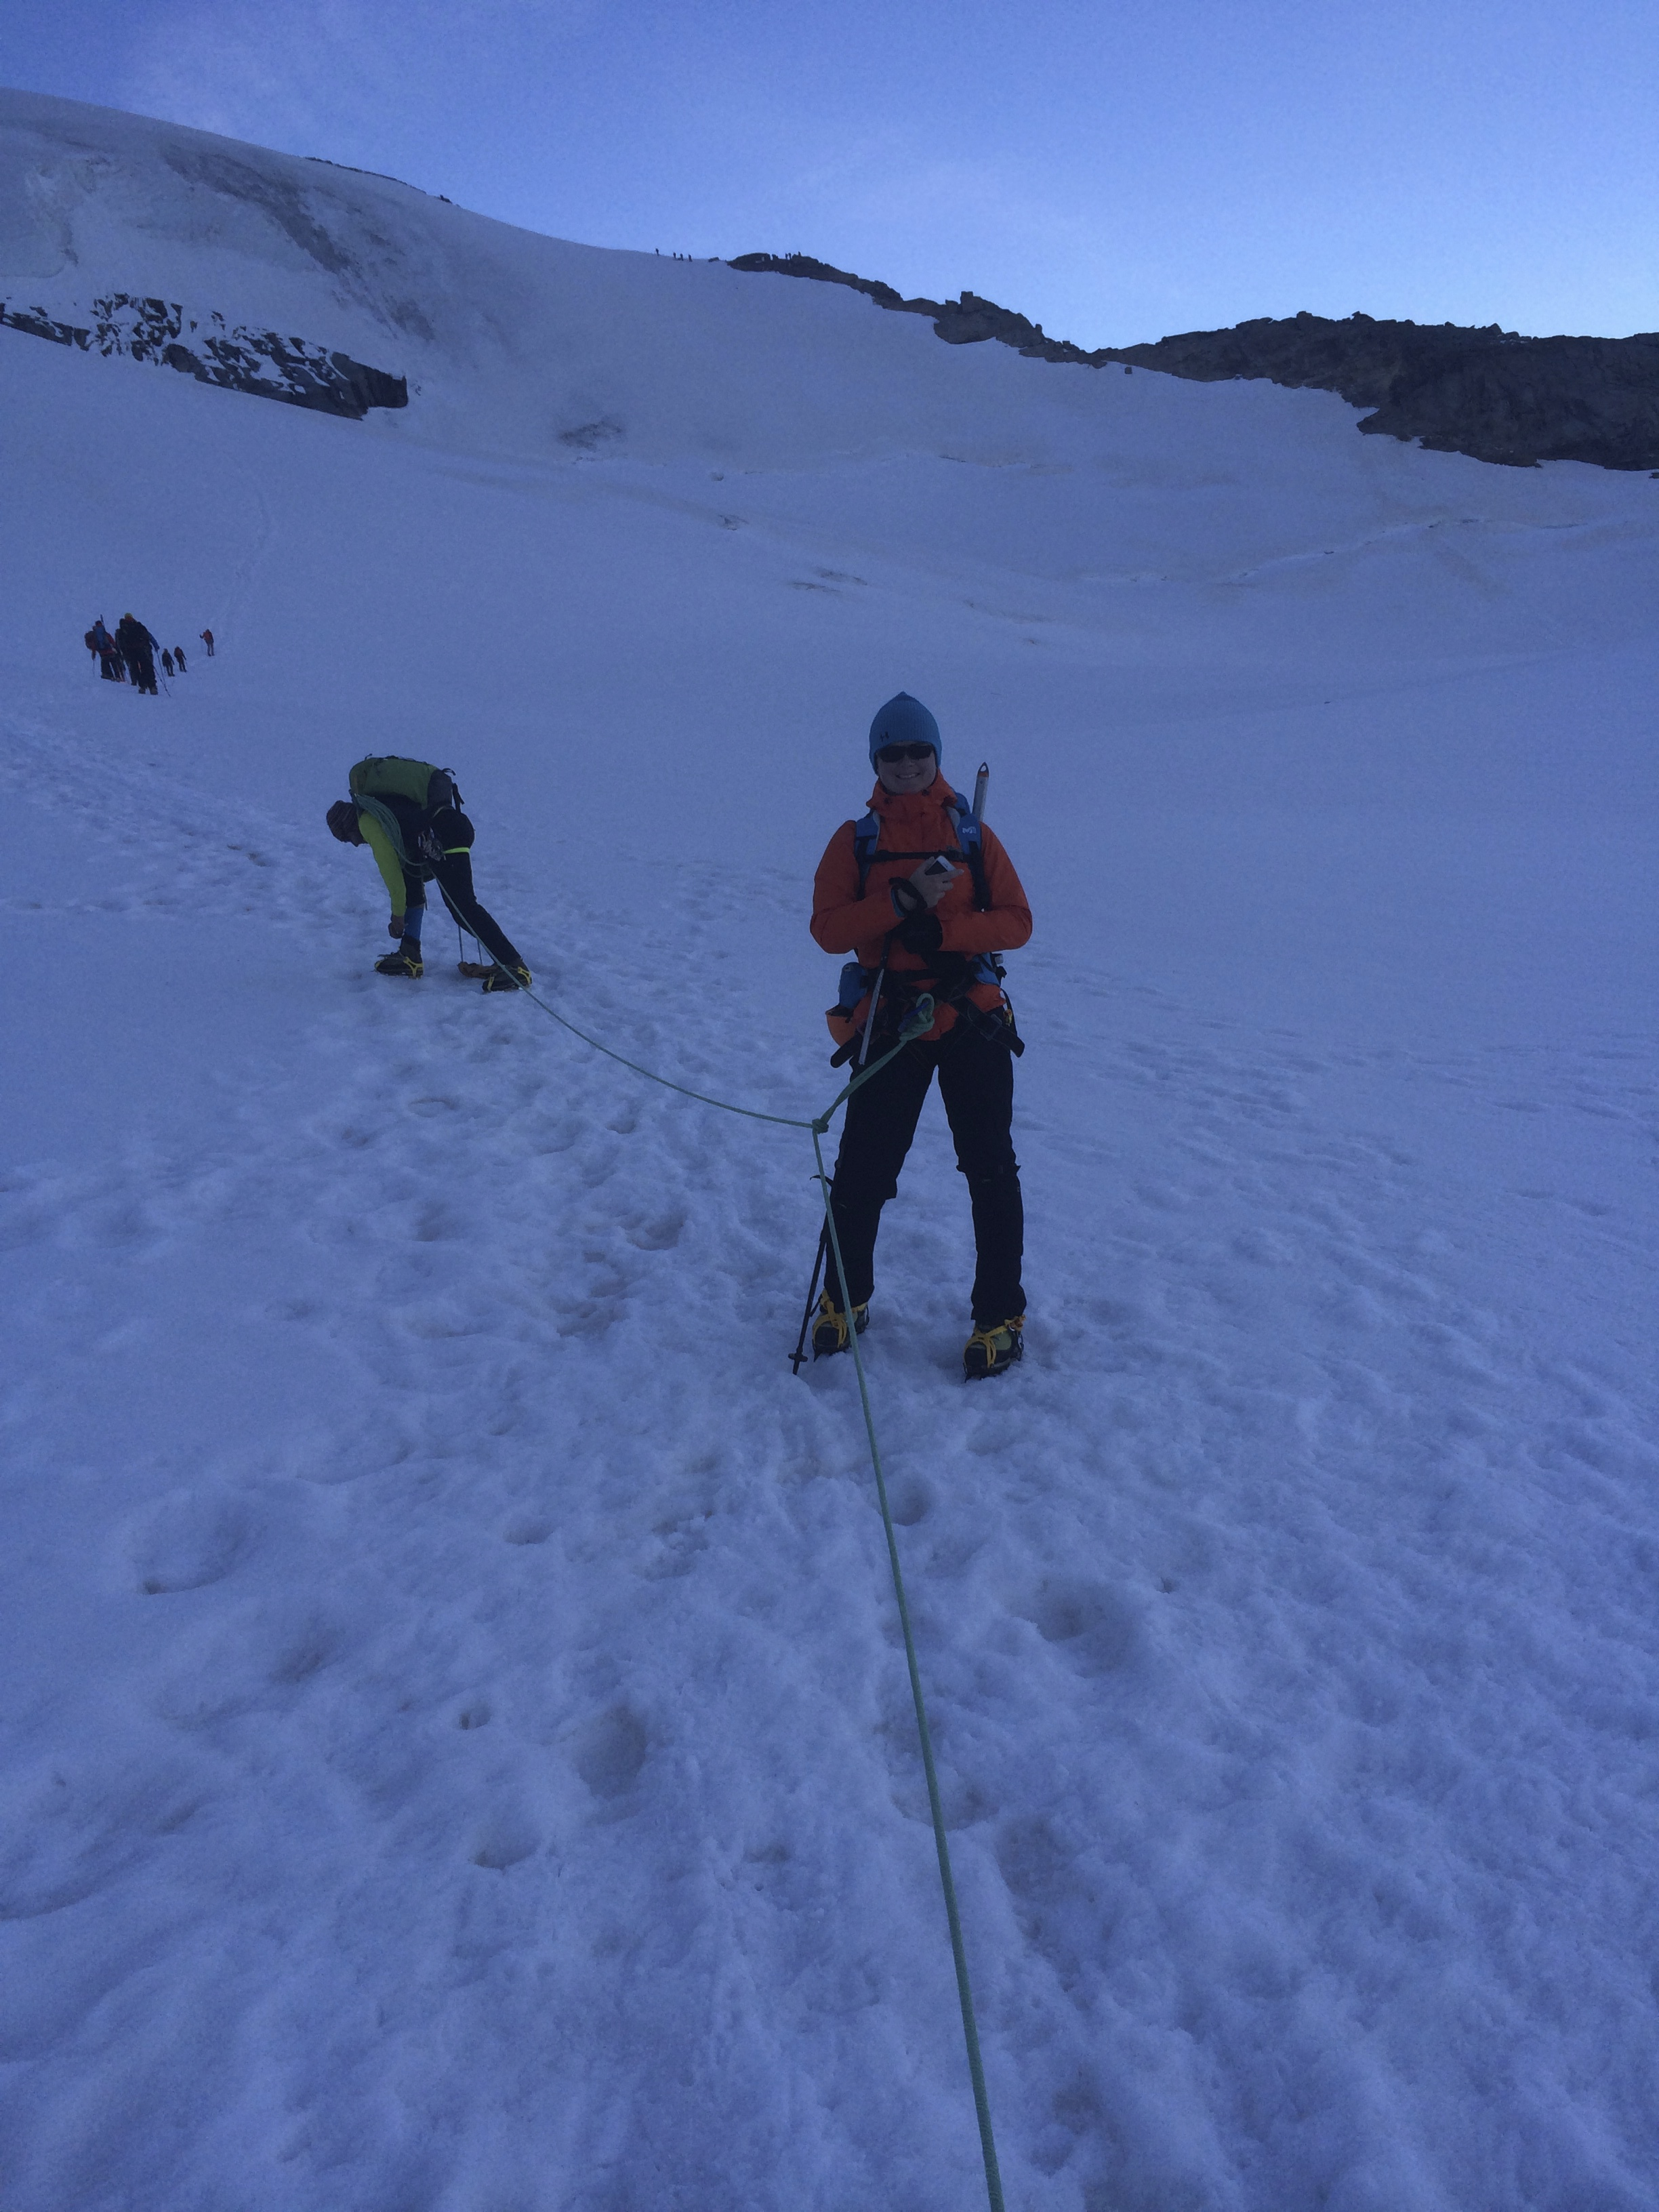 ....with crampons on and all well wrapped up - it was very cold!